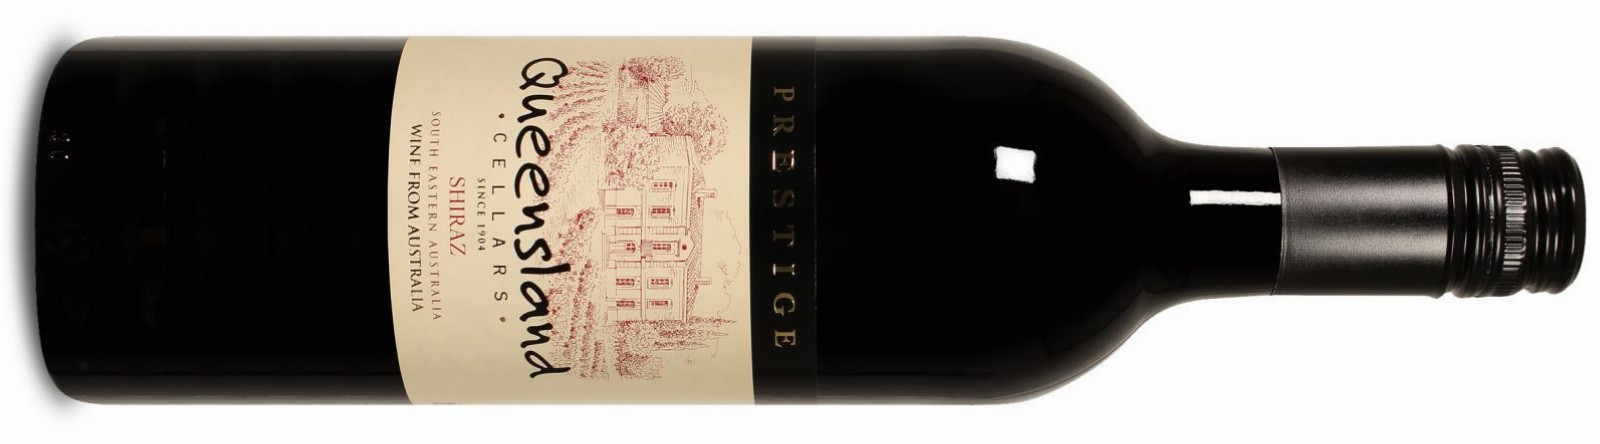 Queensland Cellars Prestige Shiraz 2013